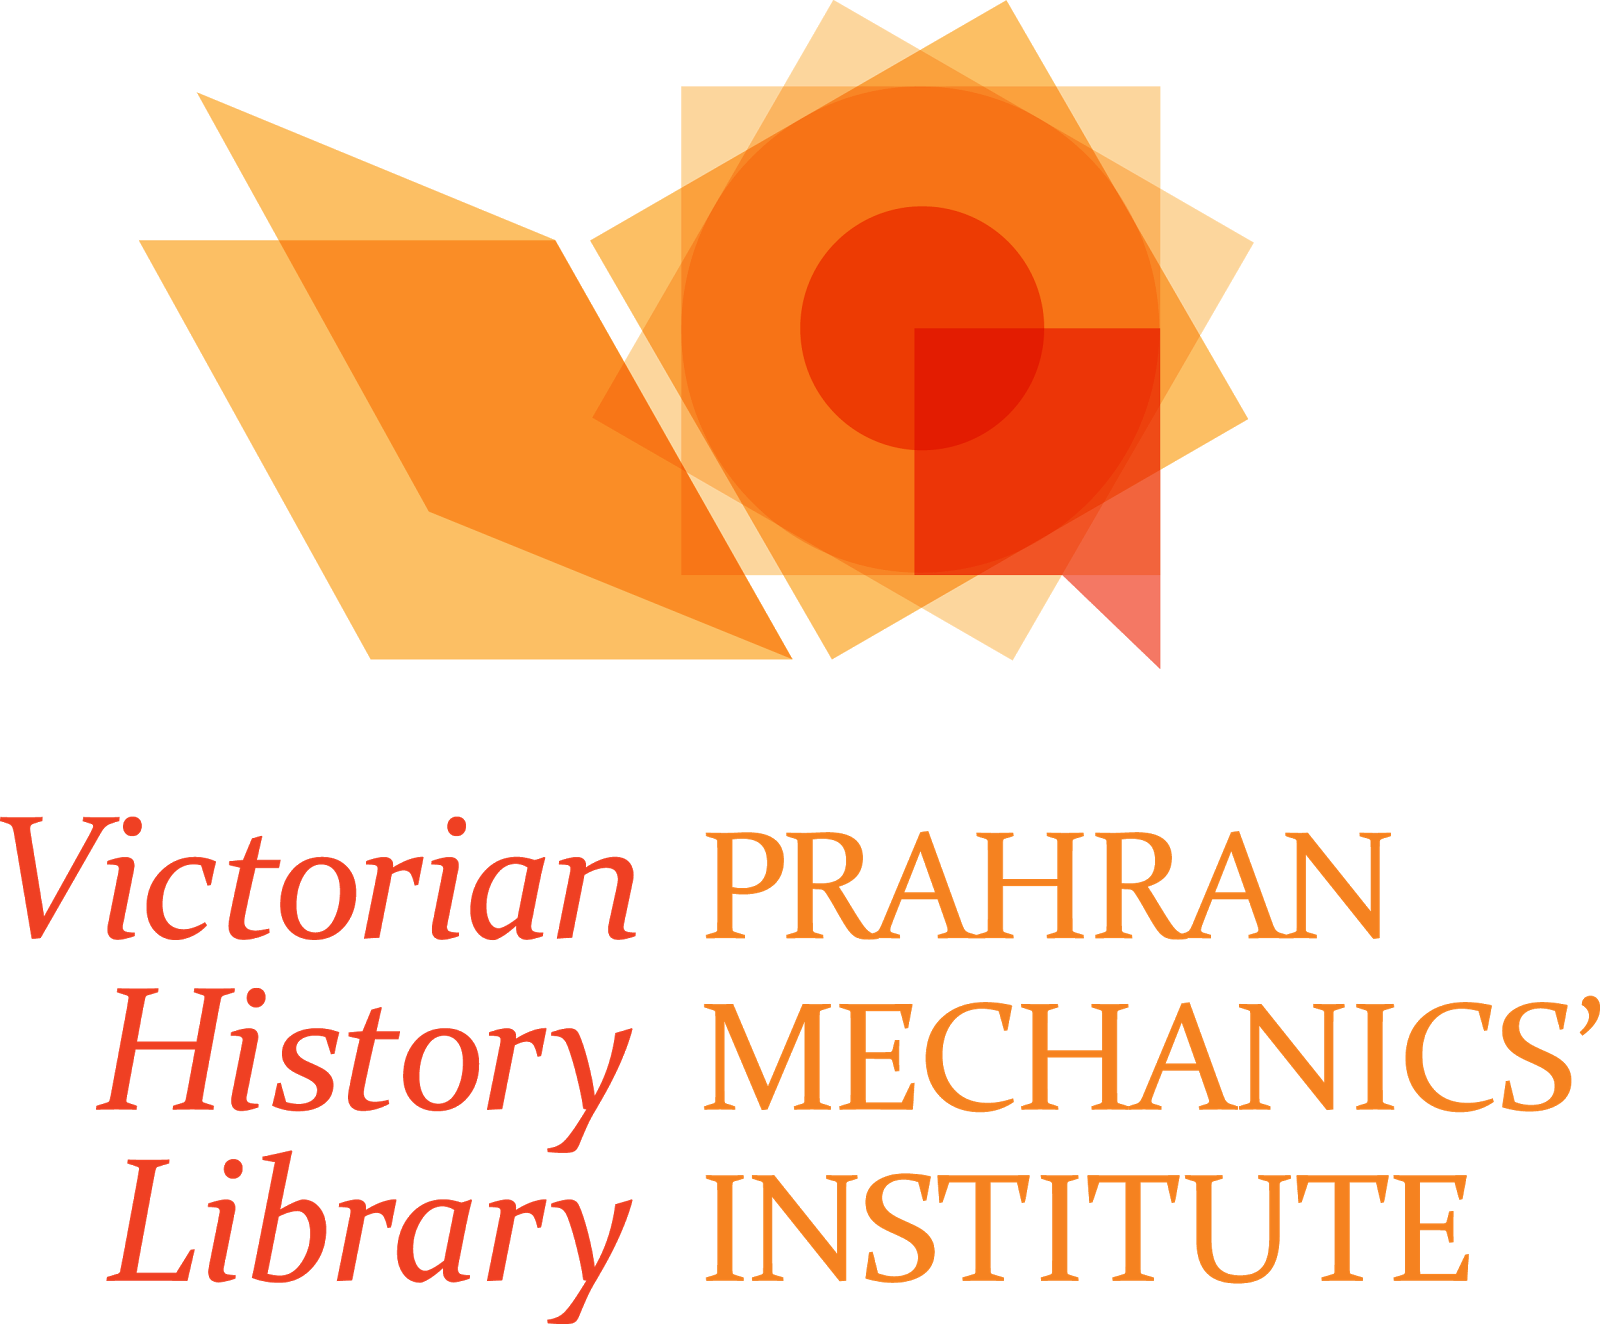 PRAHAN MECHANICS' INSTITUTE